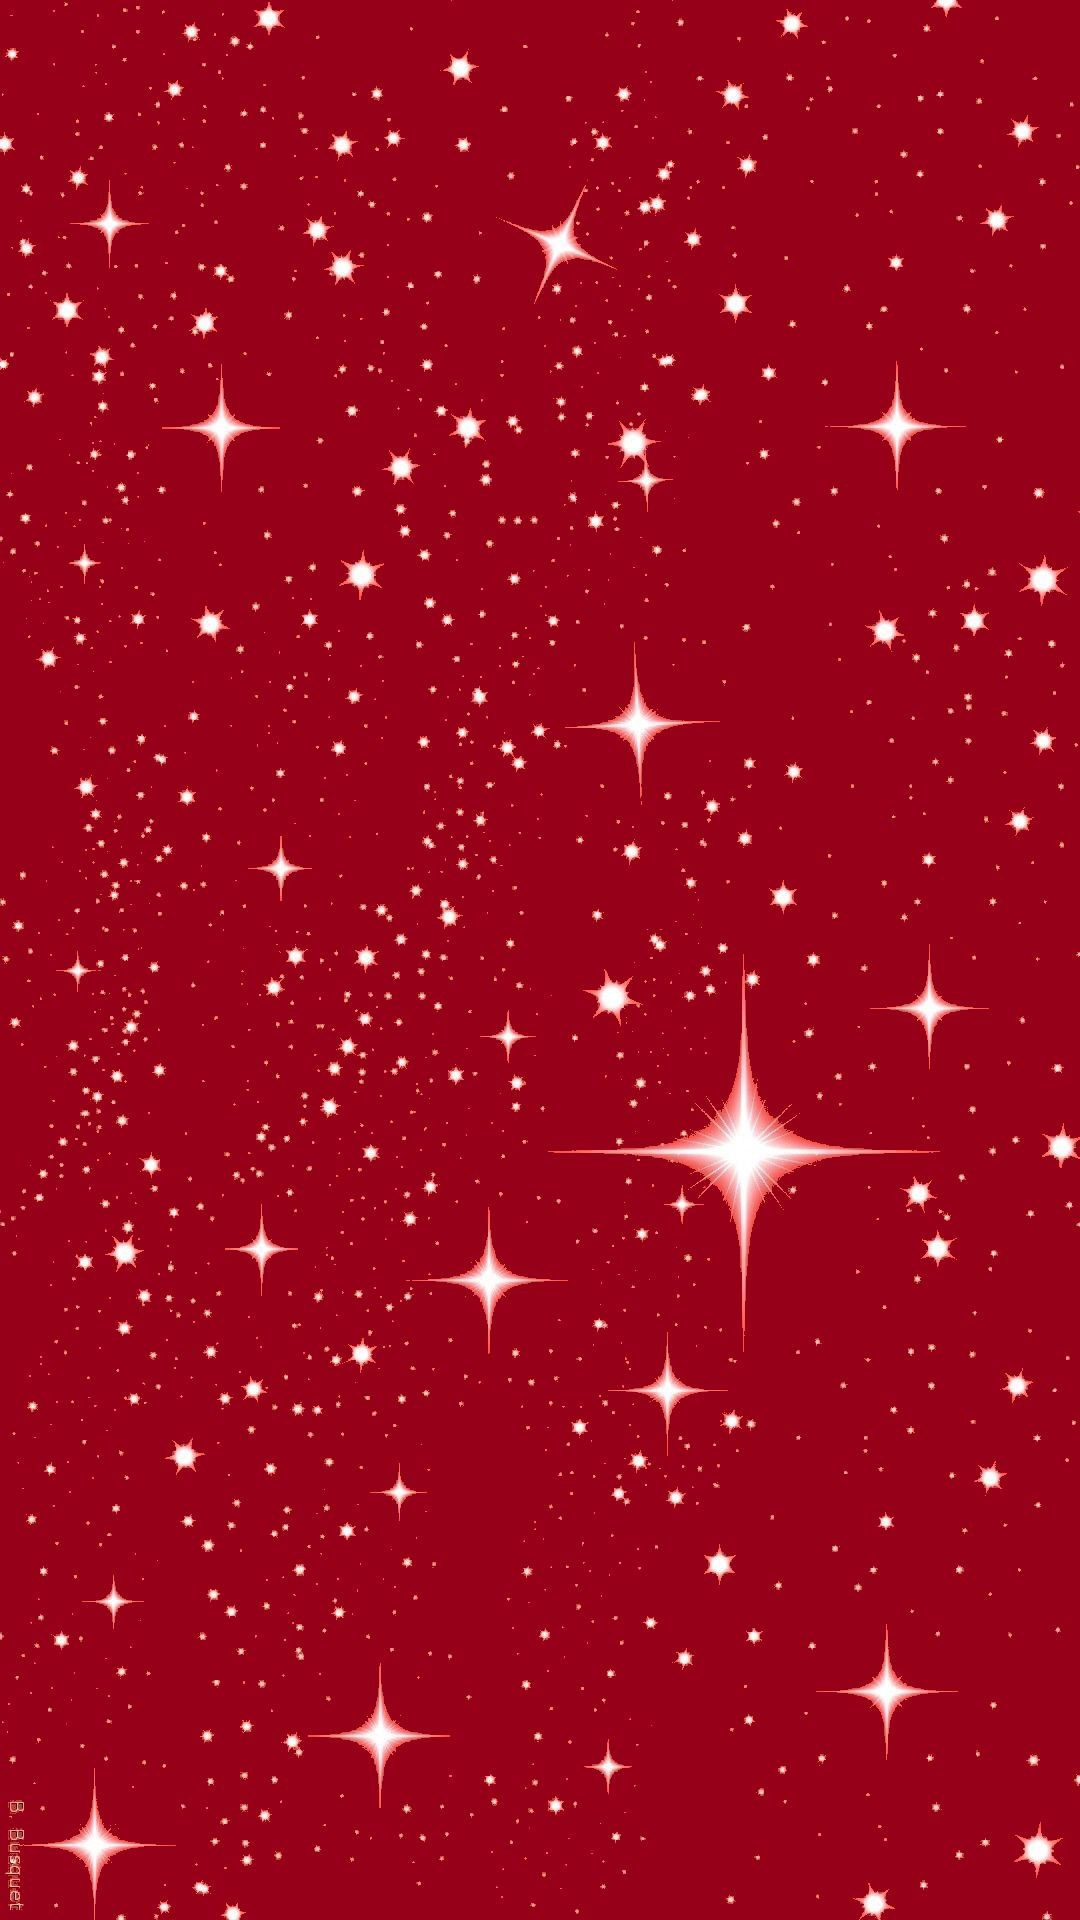 Christmas Star Wallpaper 71 Pictures